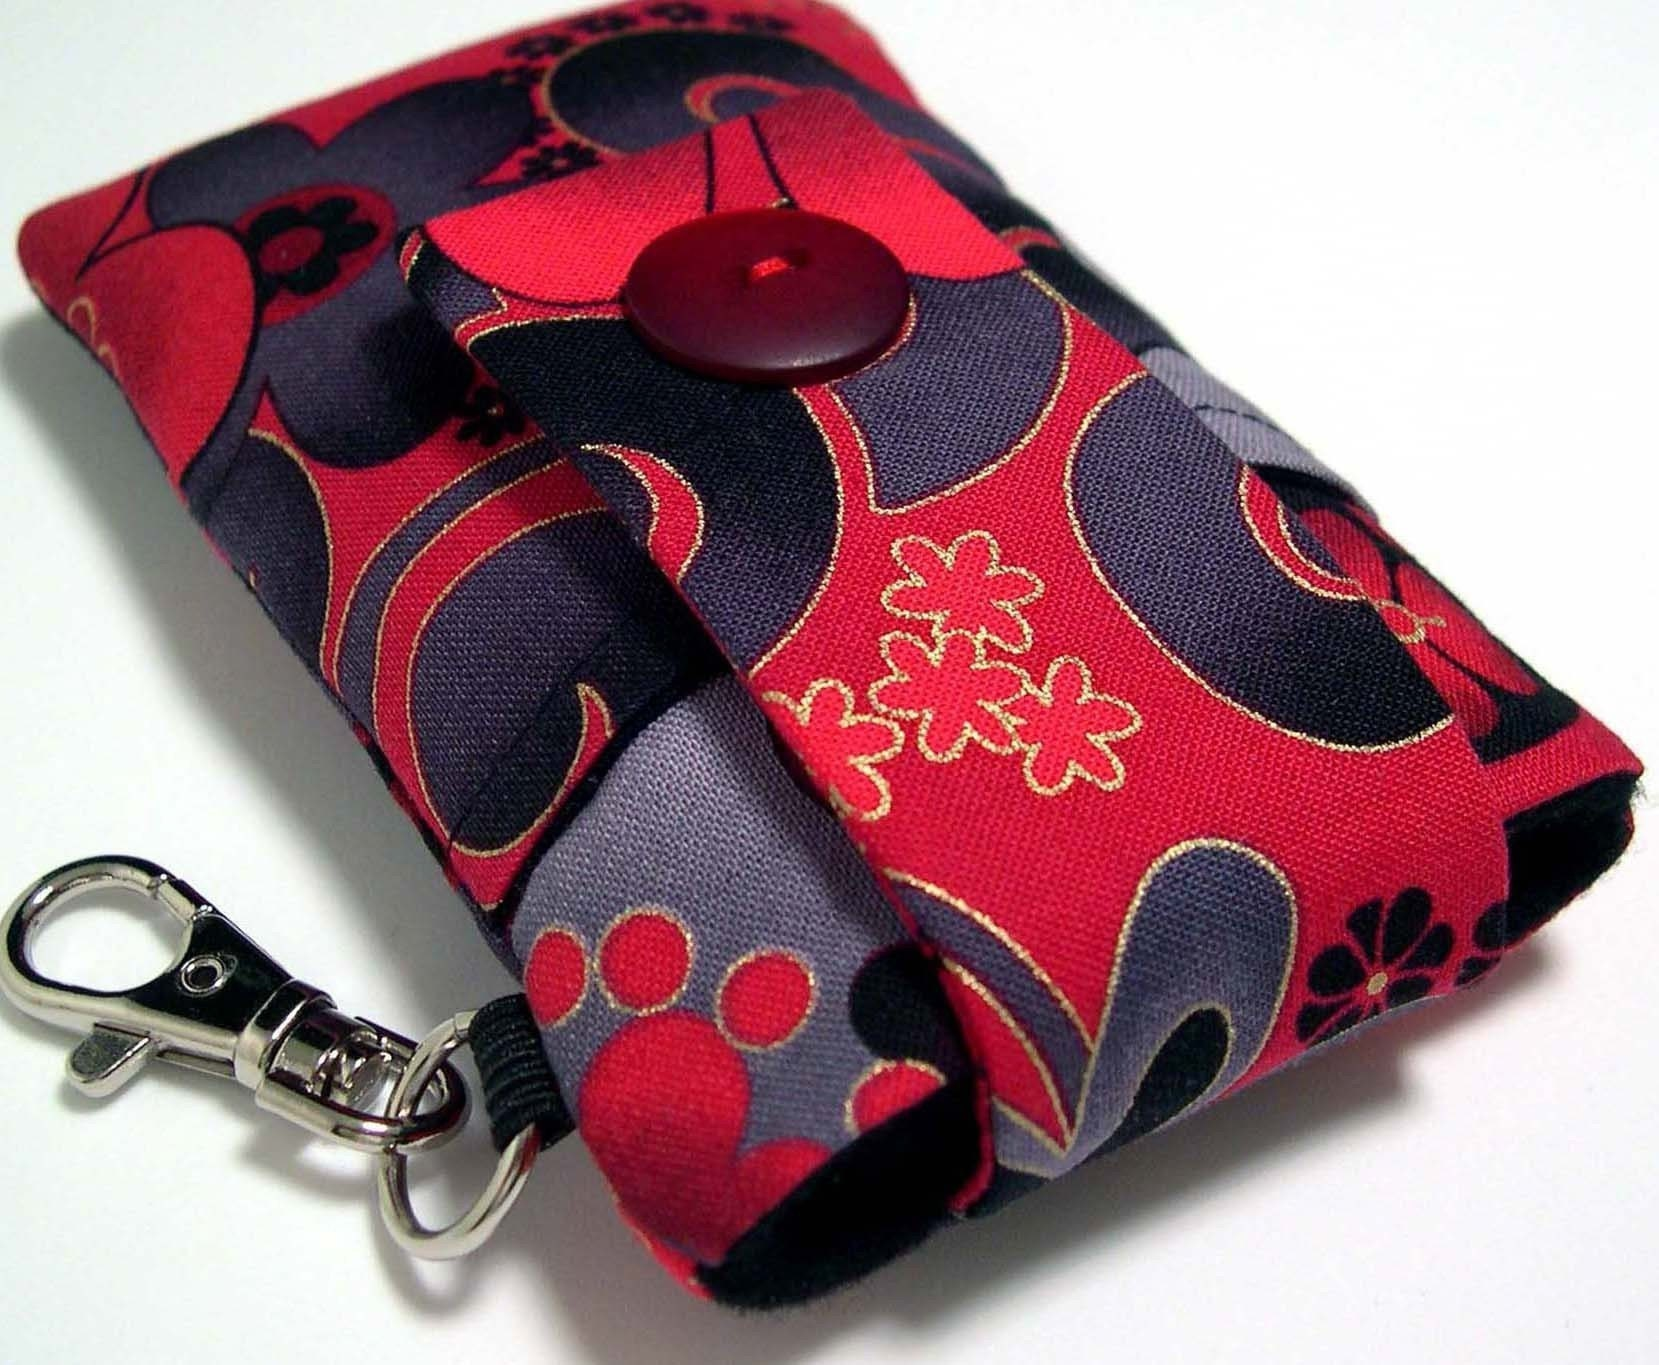 PADDED iPhone / iPod POUCH in MIDNIGHT SAKURA fabric